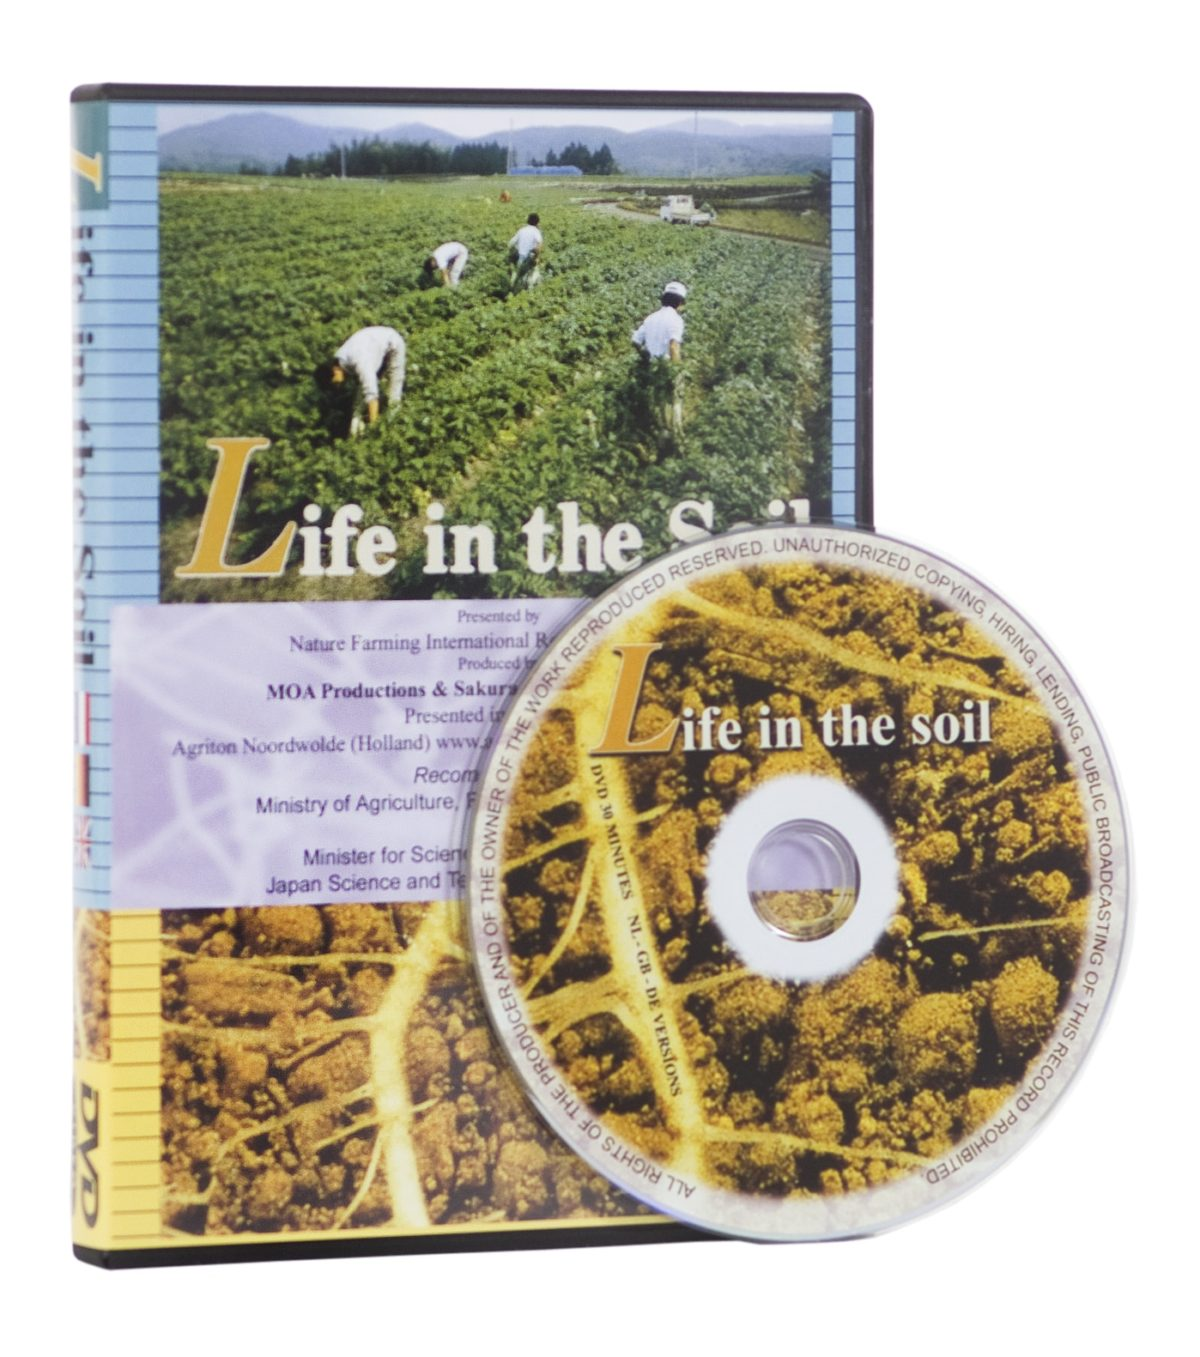 Life in the soil - DVD-0